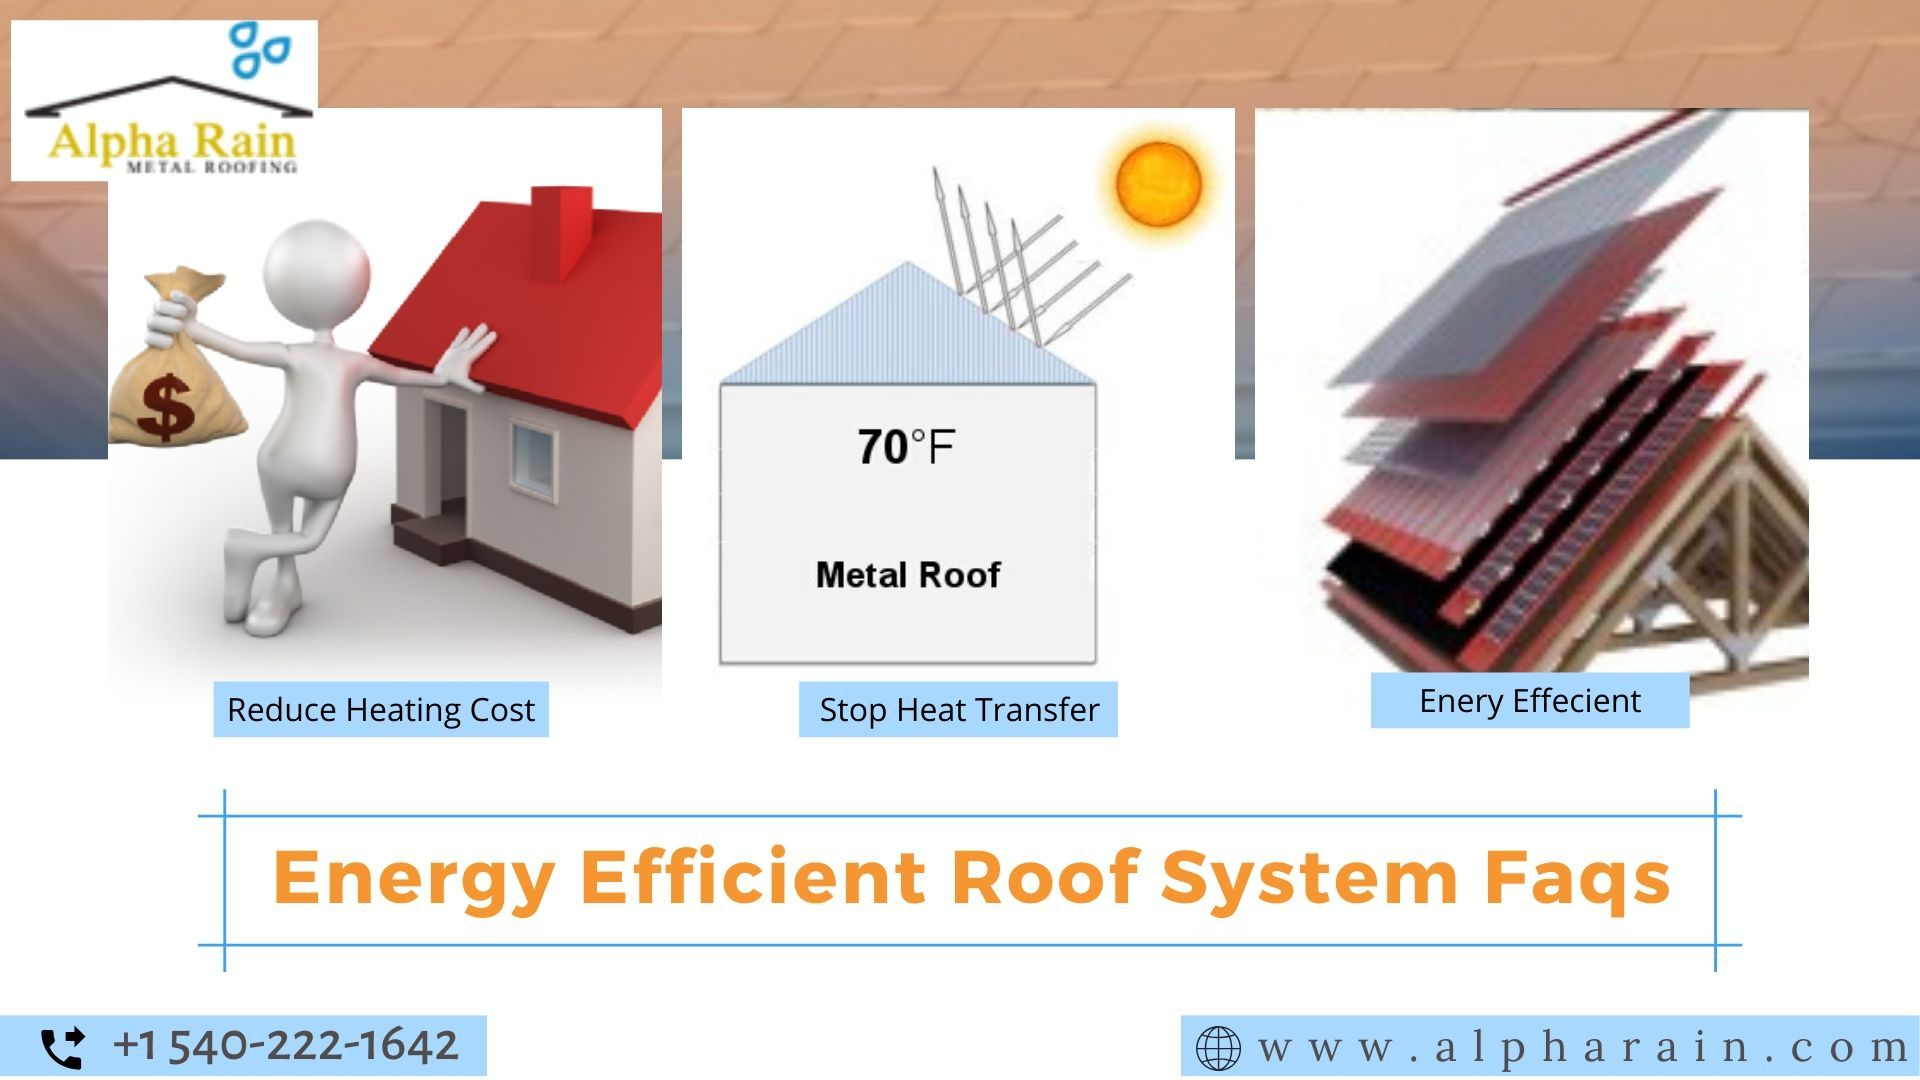 By Installing Energy Efficient Roof System You Can Save Energy